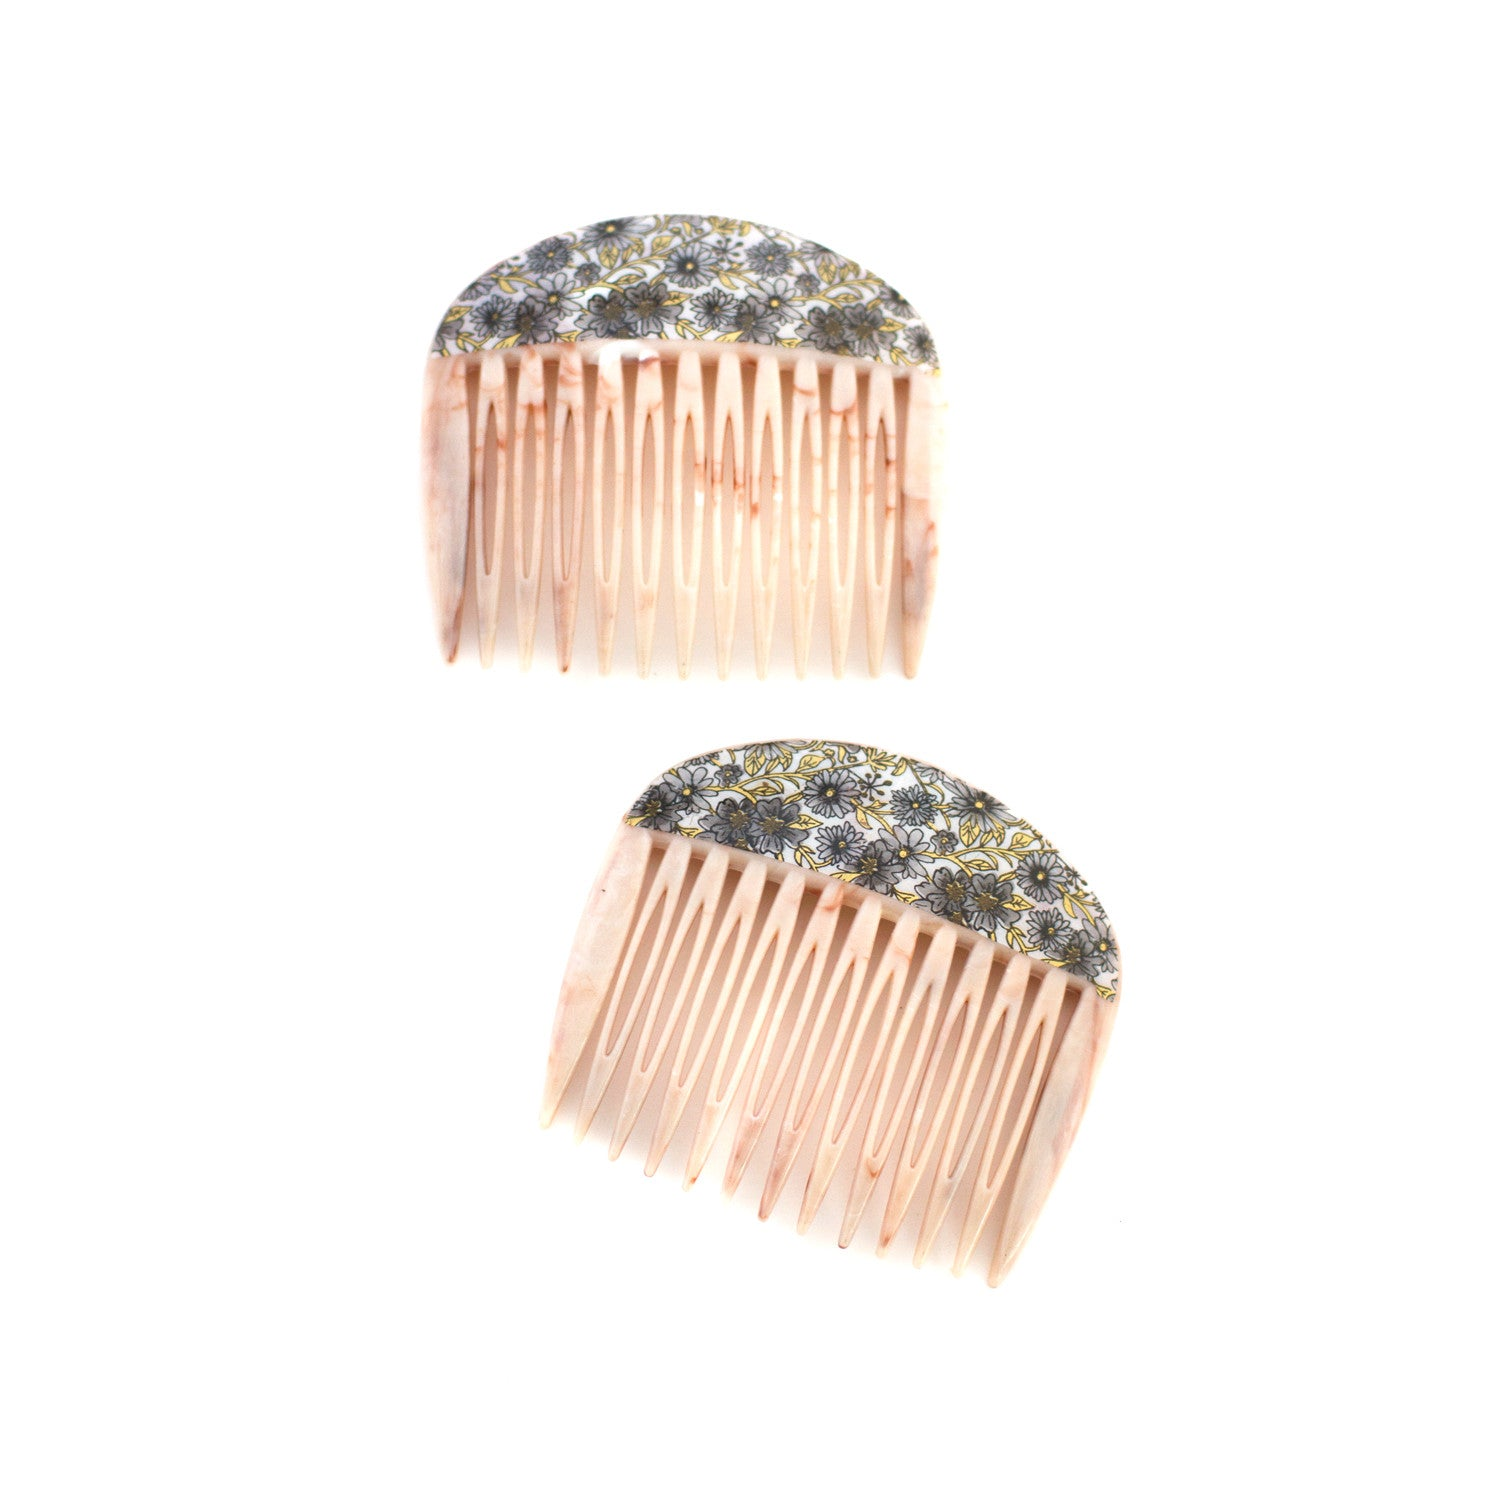 peach marbled vintage hair combs - made in france - rare - pin up beauty